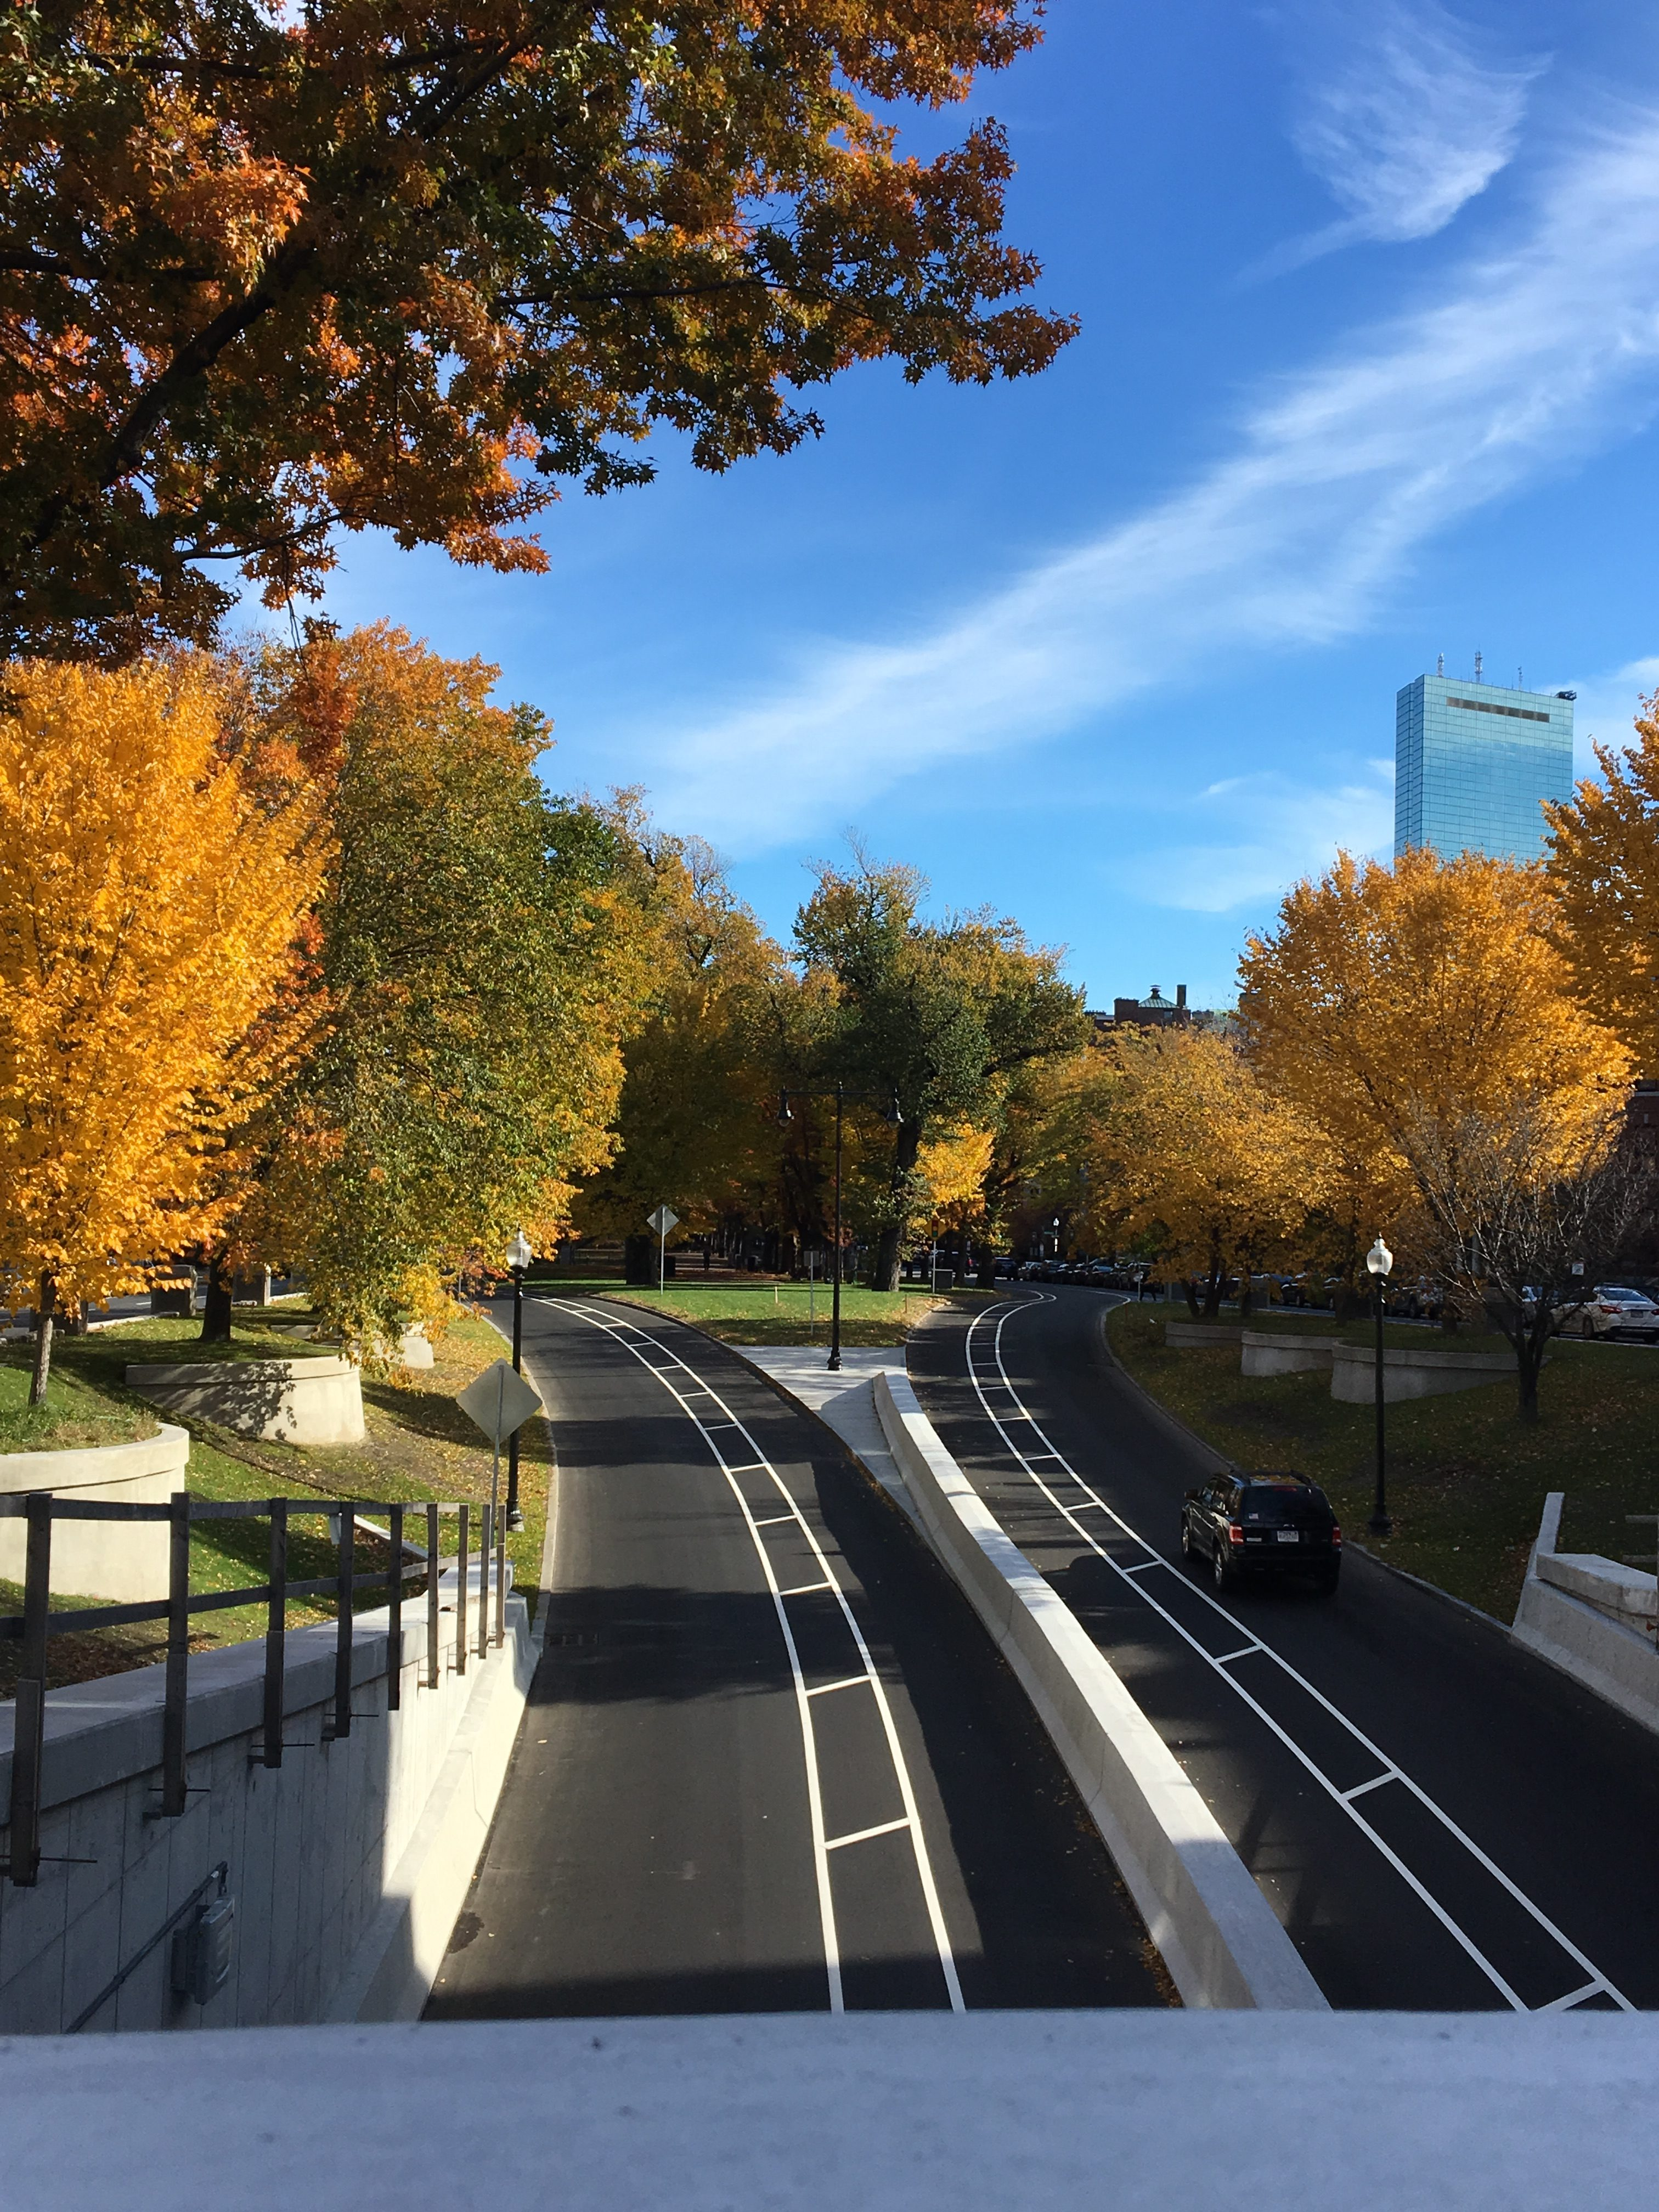 The view from an overpass in Boston. The black road has bright white stripes painted on it, and to either side is green grass, blue sky, and yellow-orange trees.